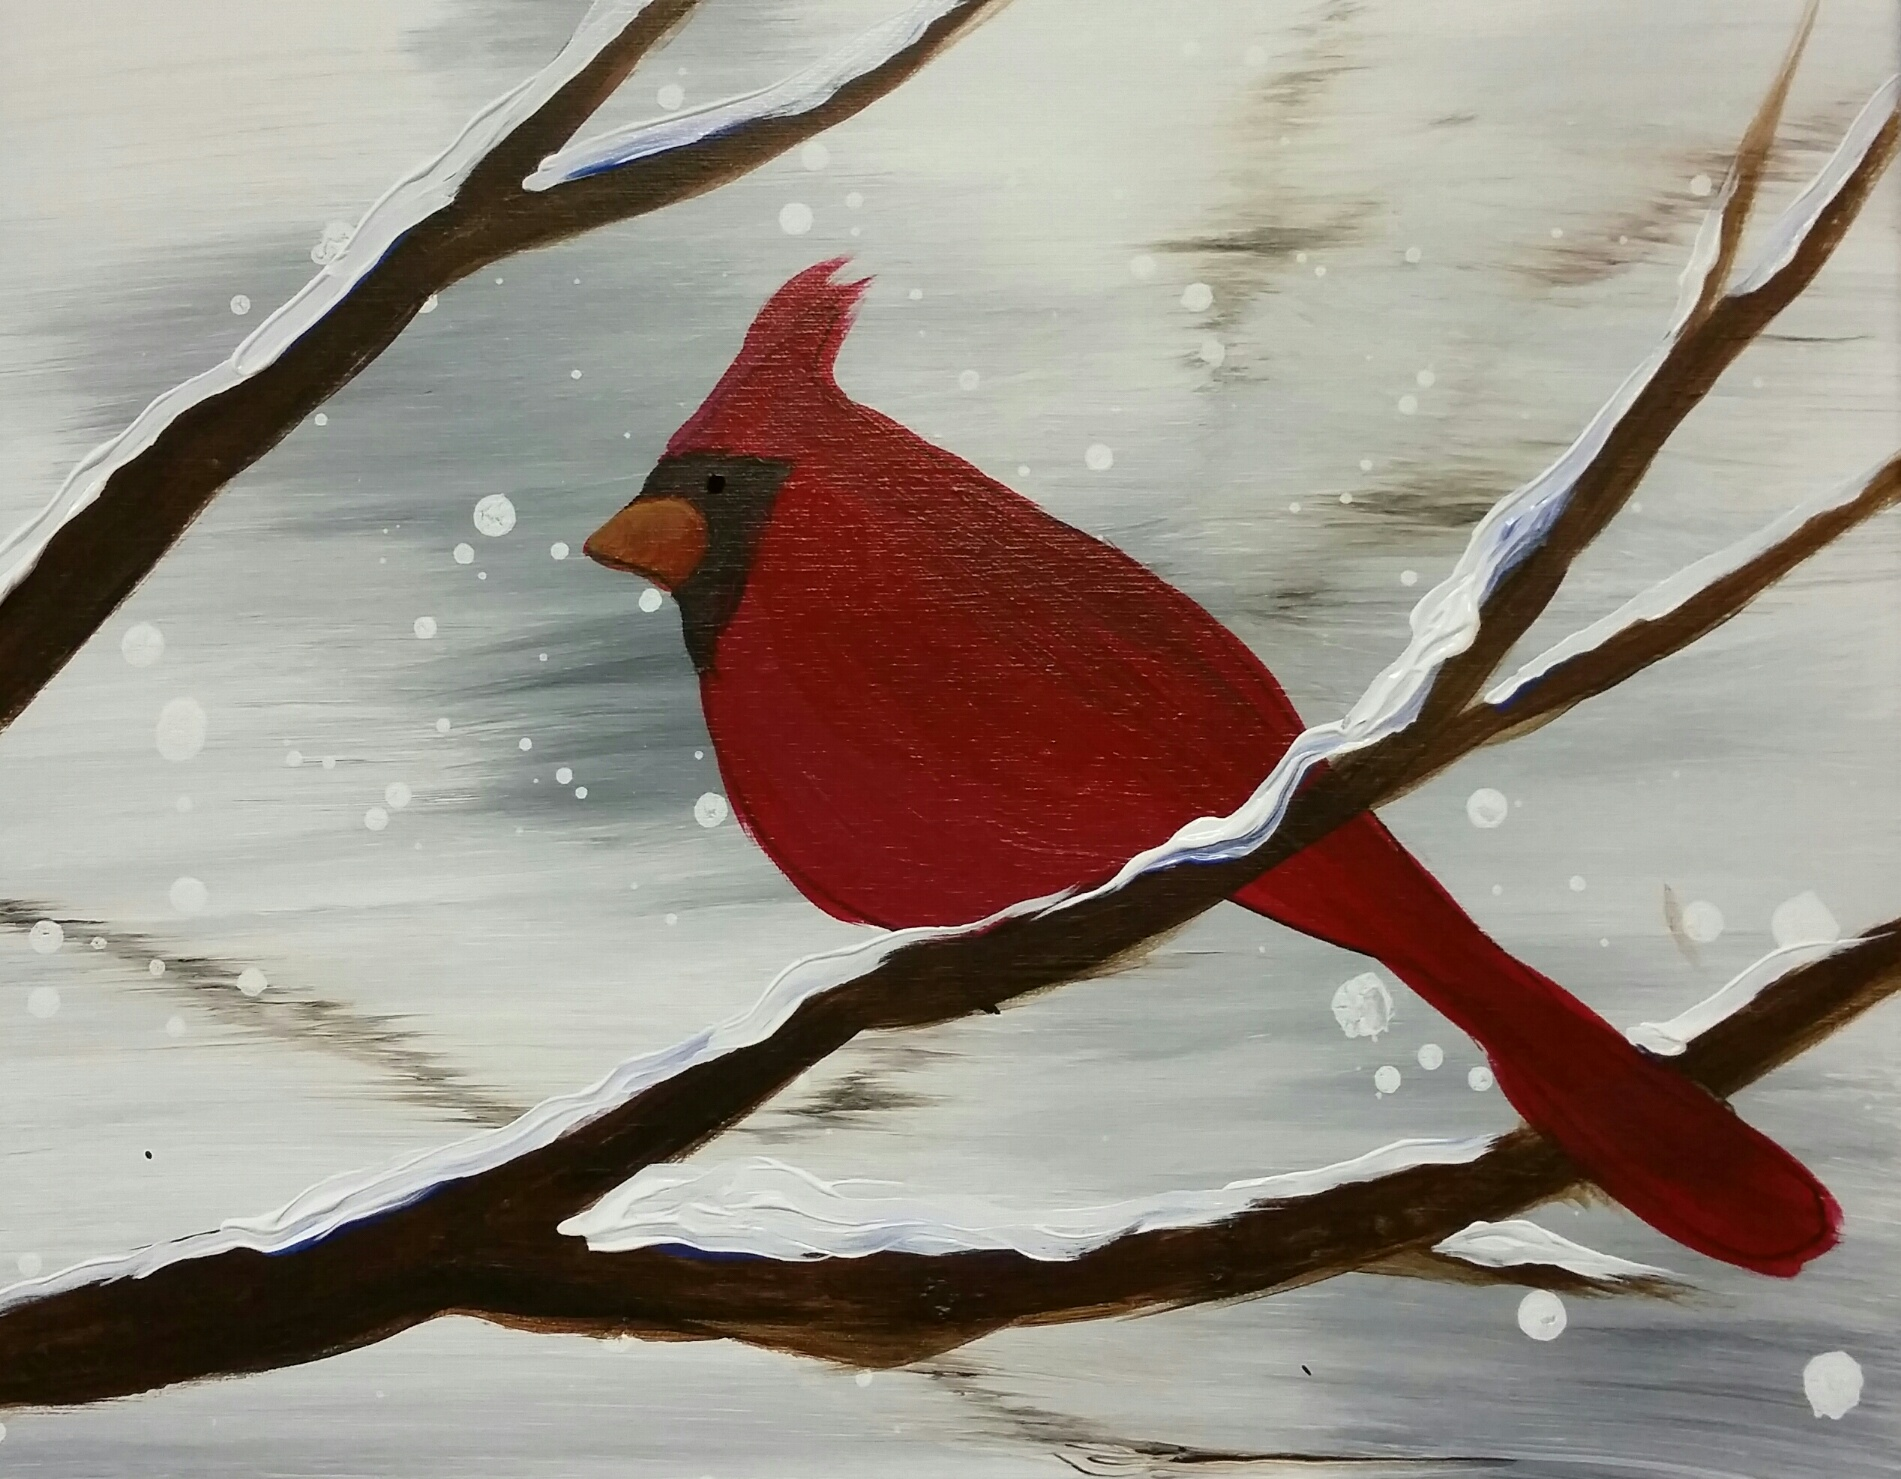 Red Cardinal- 2 hours